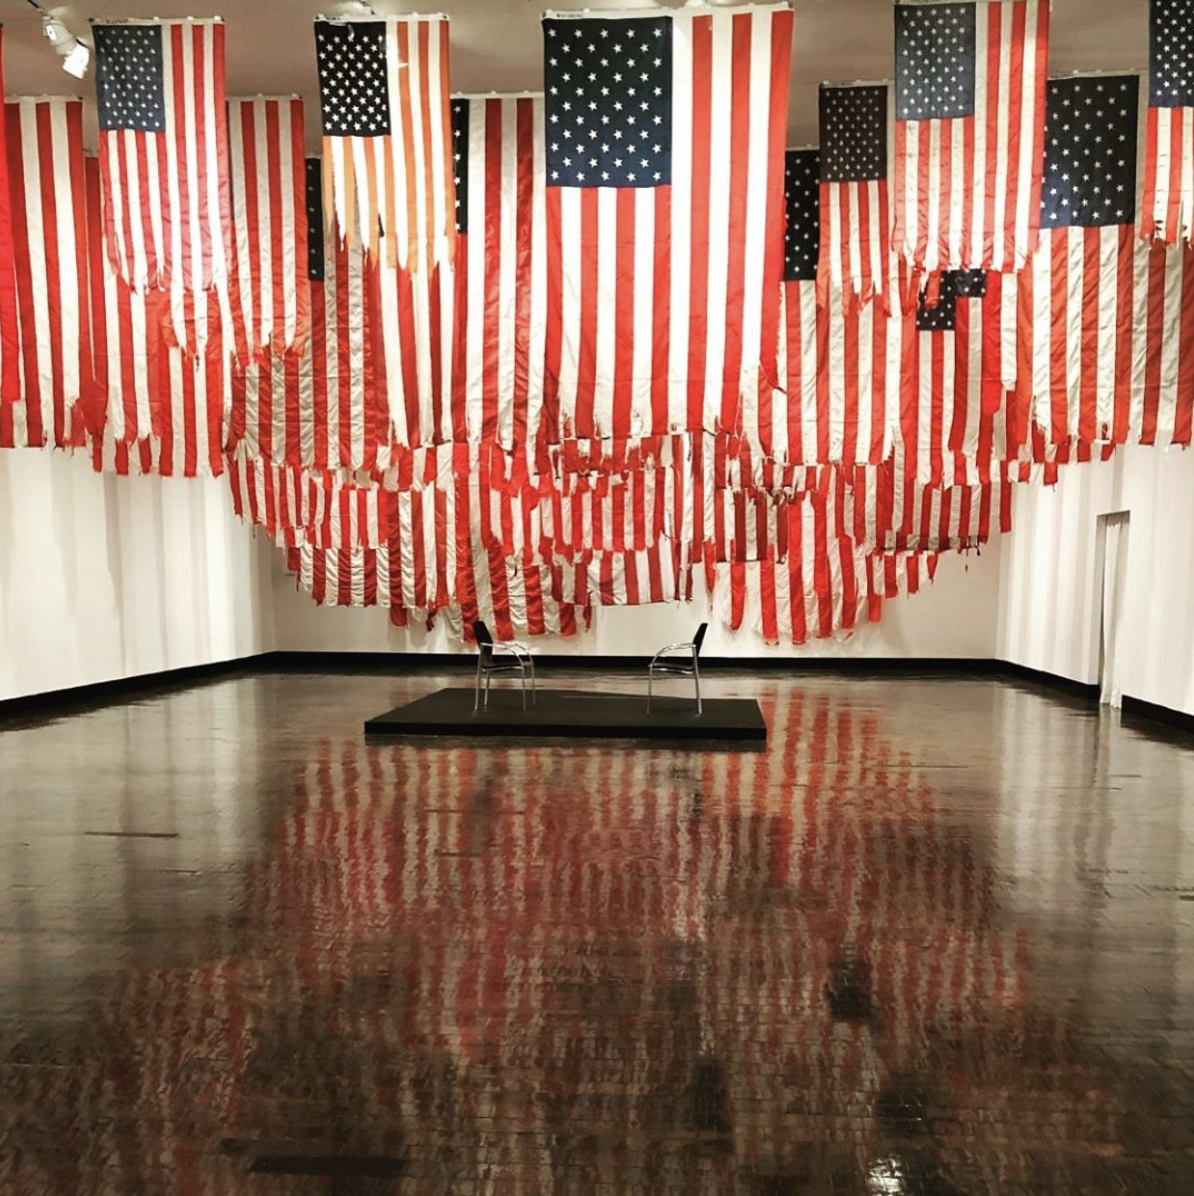 Mel Ziegler's Flag Exchange exhibit